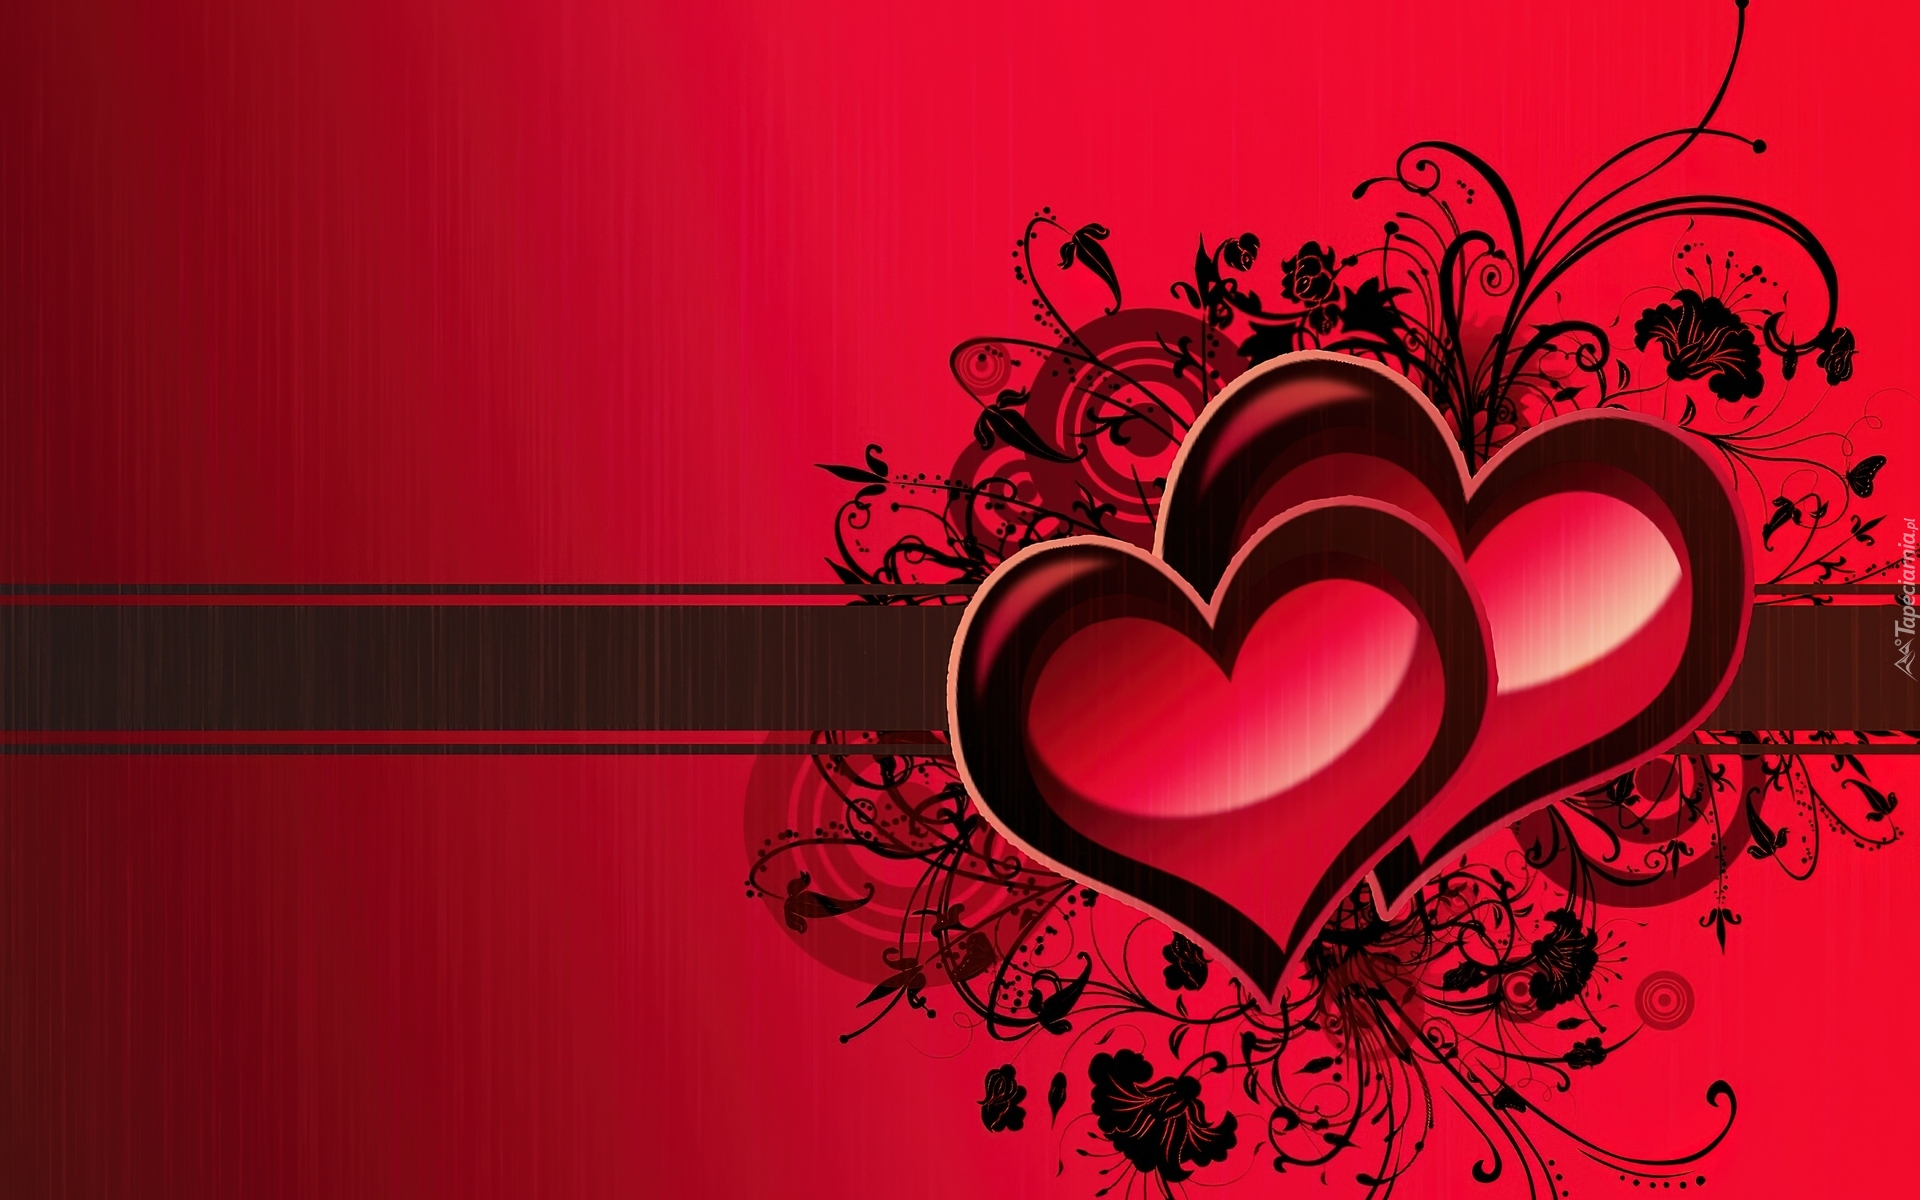 Dwa serduszka na czerwonym tle grafika - High definition love wallpapers 1080p download ...